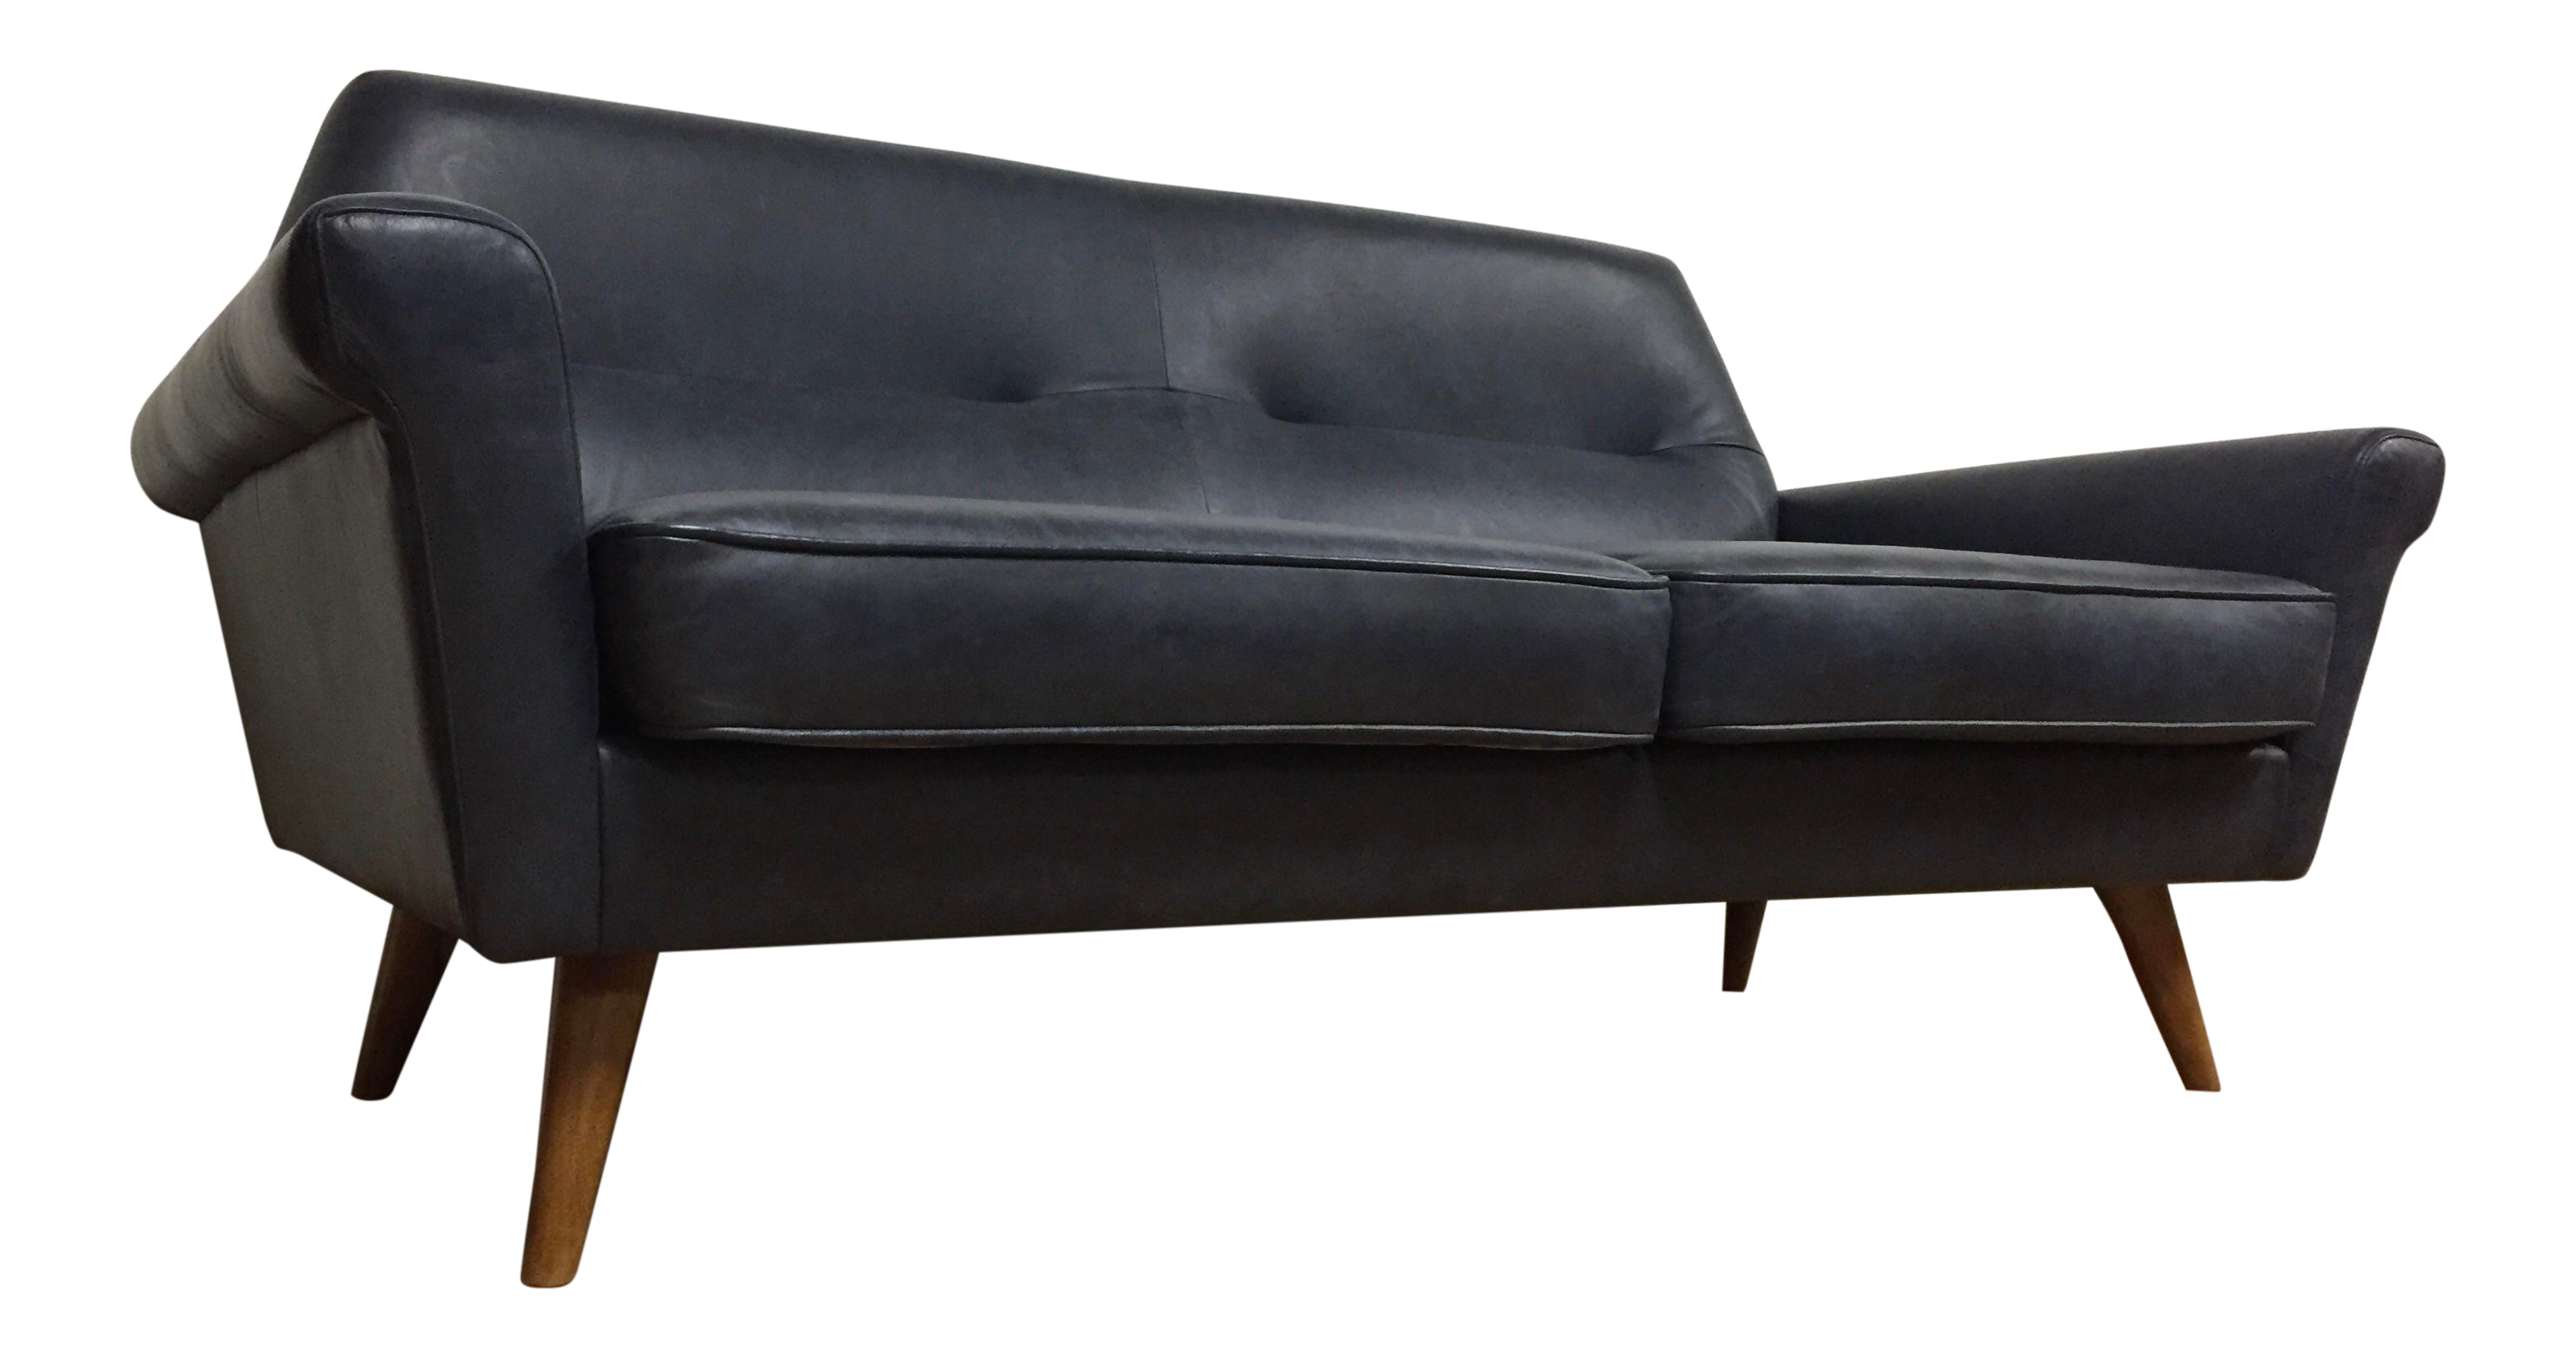 Miraculous West Elm Denmark Leather Loveseat Sofa Unemploymentrelief Wooden Chair Designs For Living Room Unemploymentrelieforg